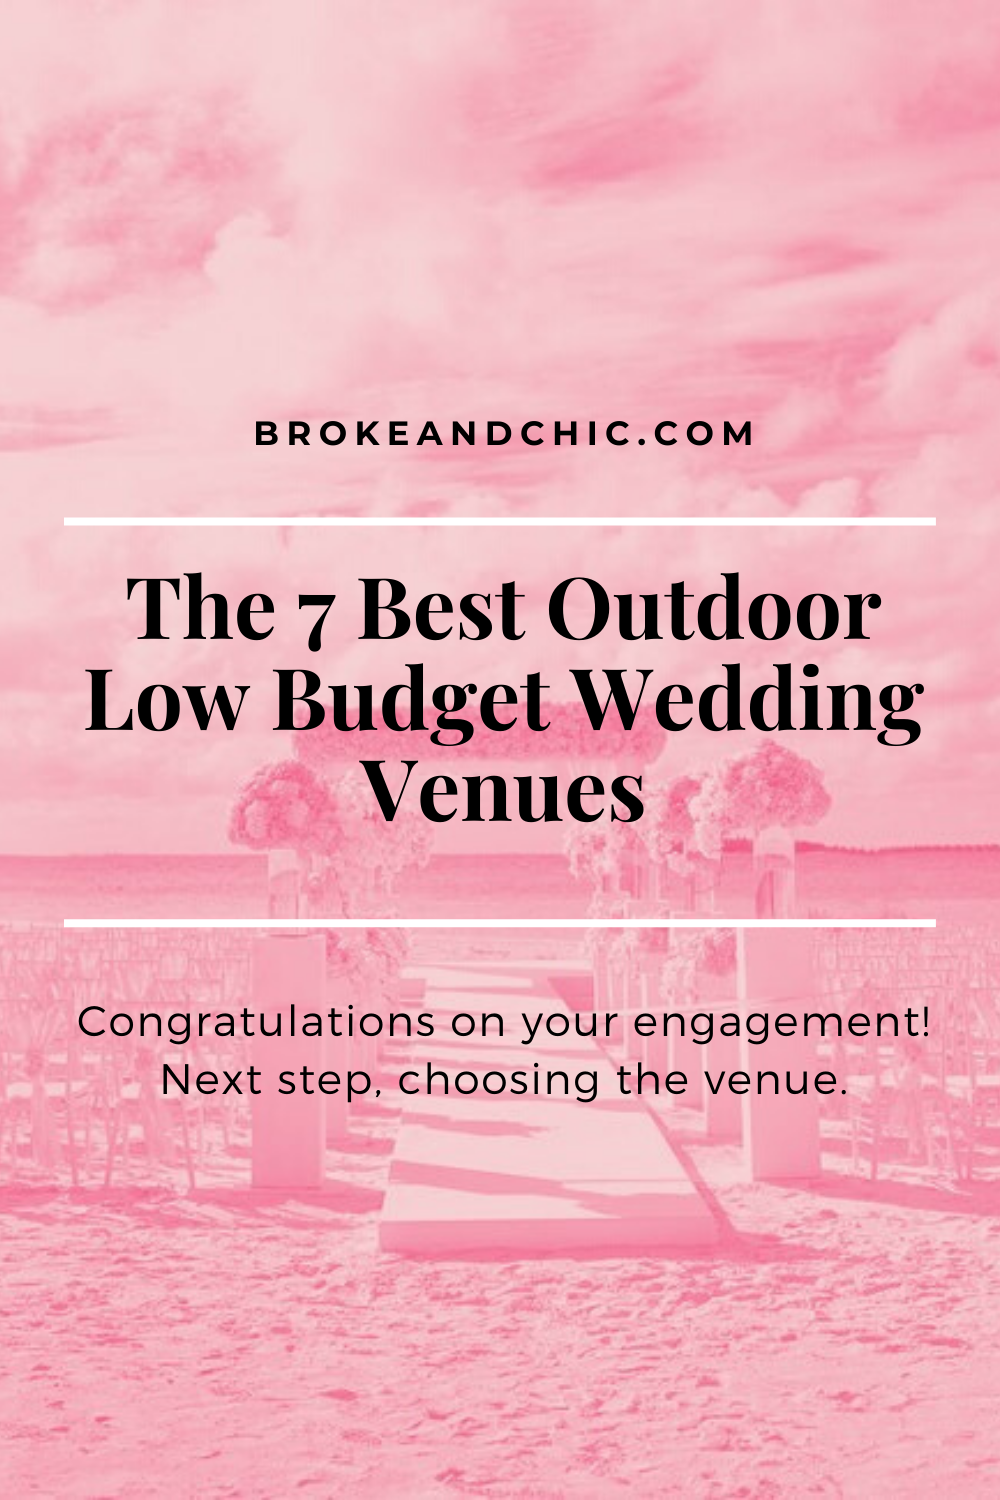 Low Budget Wedding Venues